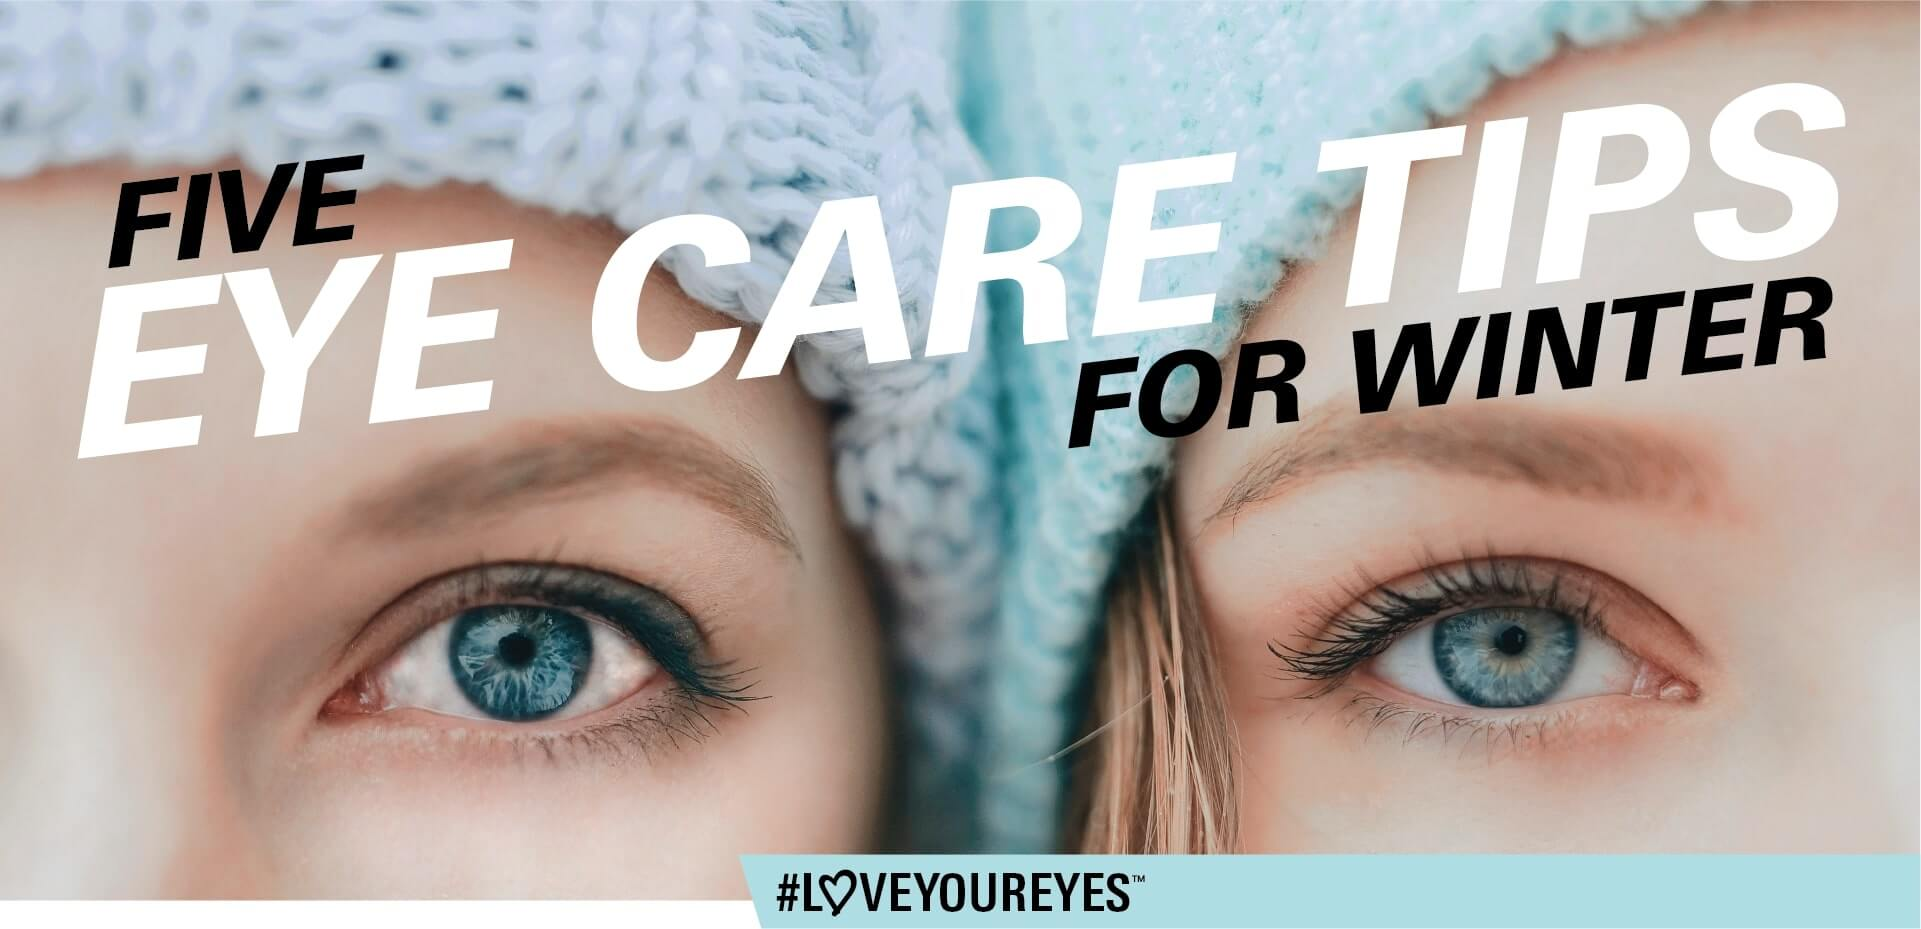 5 Eye Care Tips For Winter